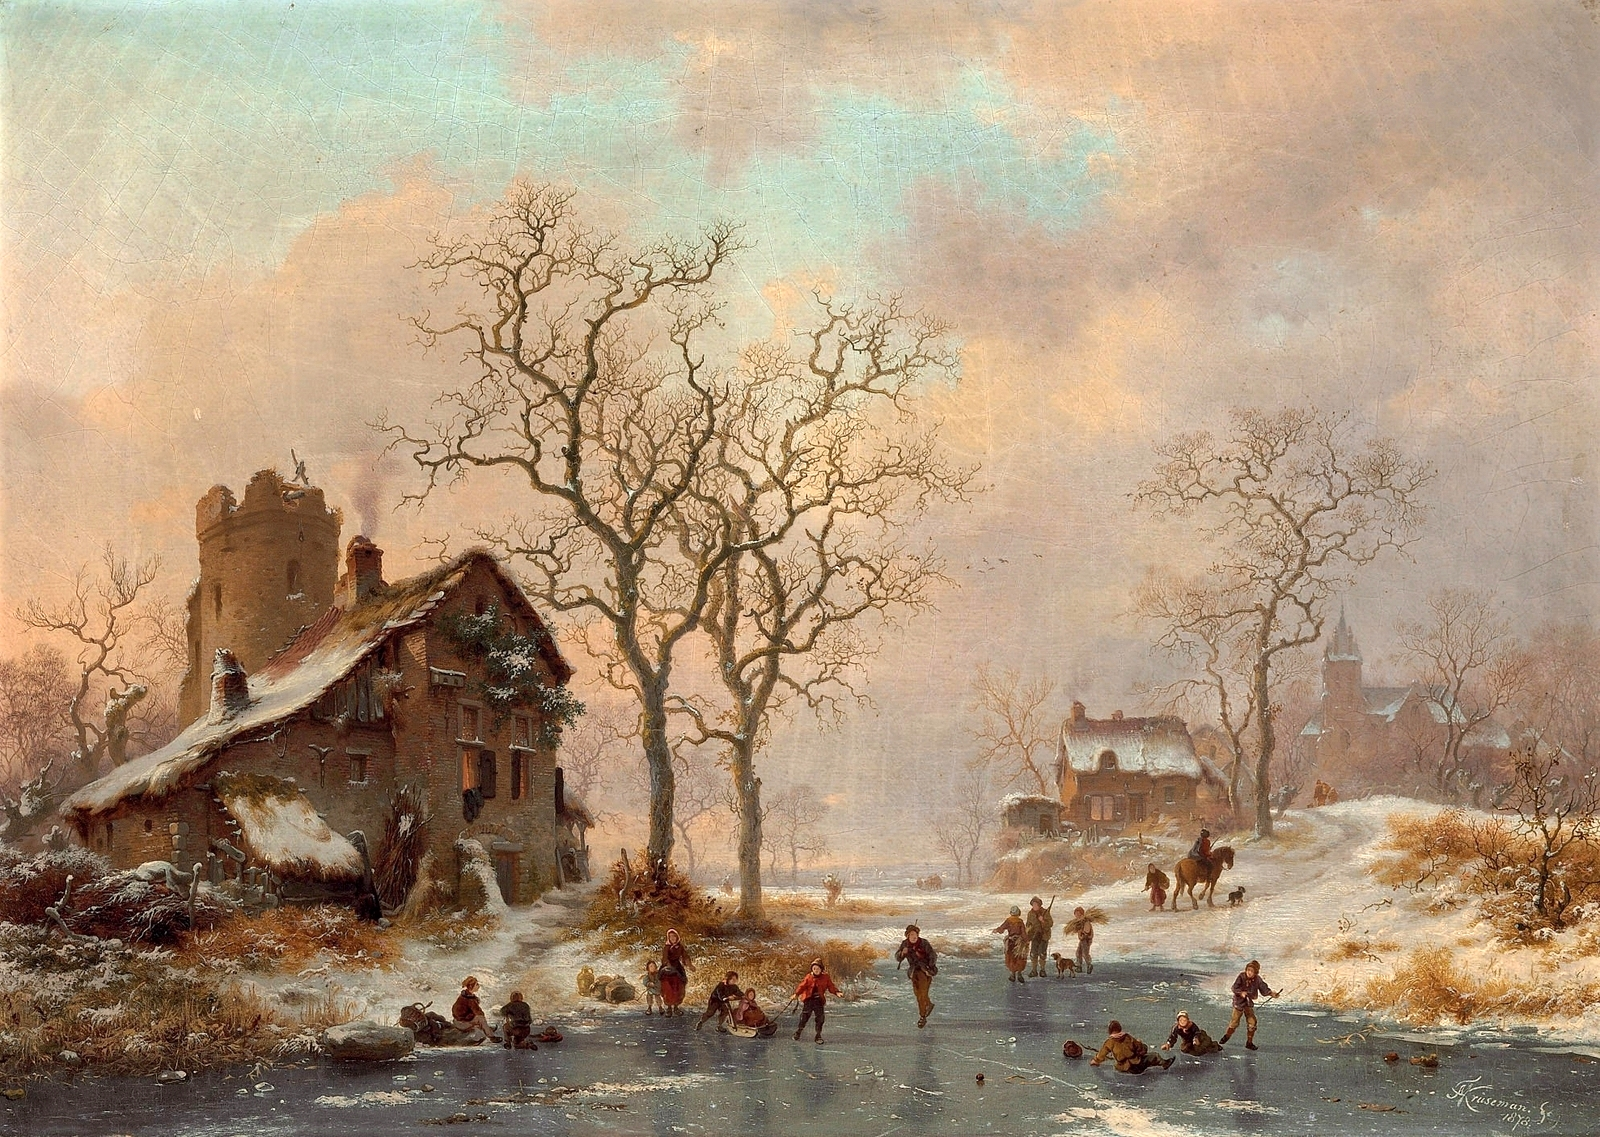 Frederik Marinus Kruseman – private collection. Title: Skaters at Dusk.  Date: 1878. Materials: oil on canvas. Dimensions: 49.6 x 69.9 cm. Inscriptions: M Kruseman fc/1878' (lower right); Le sous signé déclare avoir peint le tableau ci contre original/sans reproduction Bruxelles 1878. FM Kruseman' (on the reverse). Sold by Christie's in New York, on January 27, 2010. Source: http://2.bp.blogspot.com/-qWKEm3wMeaE/VoM2kW_yrHI/AAAAAAAA3gc/JvKhxwEEA9s/s1600/1878_%25D0%259A%25D0%25BE%25D0%25BD%25D1%258C%25D0%25BA%25D0%25BE%25D0%25B1%25D0%25B5%25D0%25B6%25D1%2586%25D1%258B%2B%25D0%25B2%2B%25D1%2581%25D1%2583%25D0%25BC%25D0%25B5%25D1%2580%25D0%25BA%25D0%25B0%25D1%2585%2B%2528Skaters%2Bat%2Bdusk%2529_49.6%2Bx%2B69.9_%25D1%2585.%252C%25D0%25BC._%25D0%25A7%25D0%25B0%25D1%2581%25D1%2582%25D0%25BD%25D0%25BE%25D0%25B5%2B%25D1%2581%25D0%25BE%25D0%25B1%25D1%2580%25D0%25B0%25D0%25BD%25D0%25B8%25D0%25B5.jpg. I have changed the contrast of the original photo.